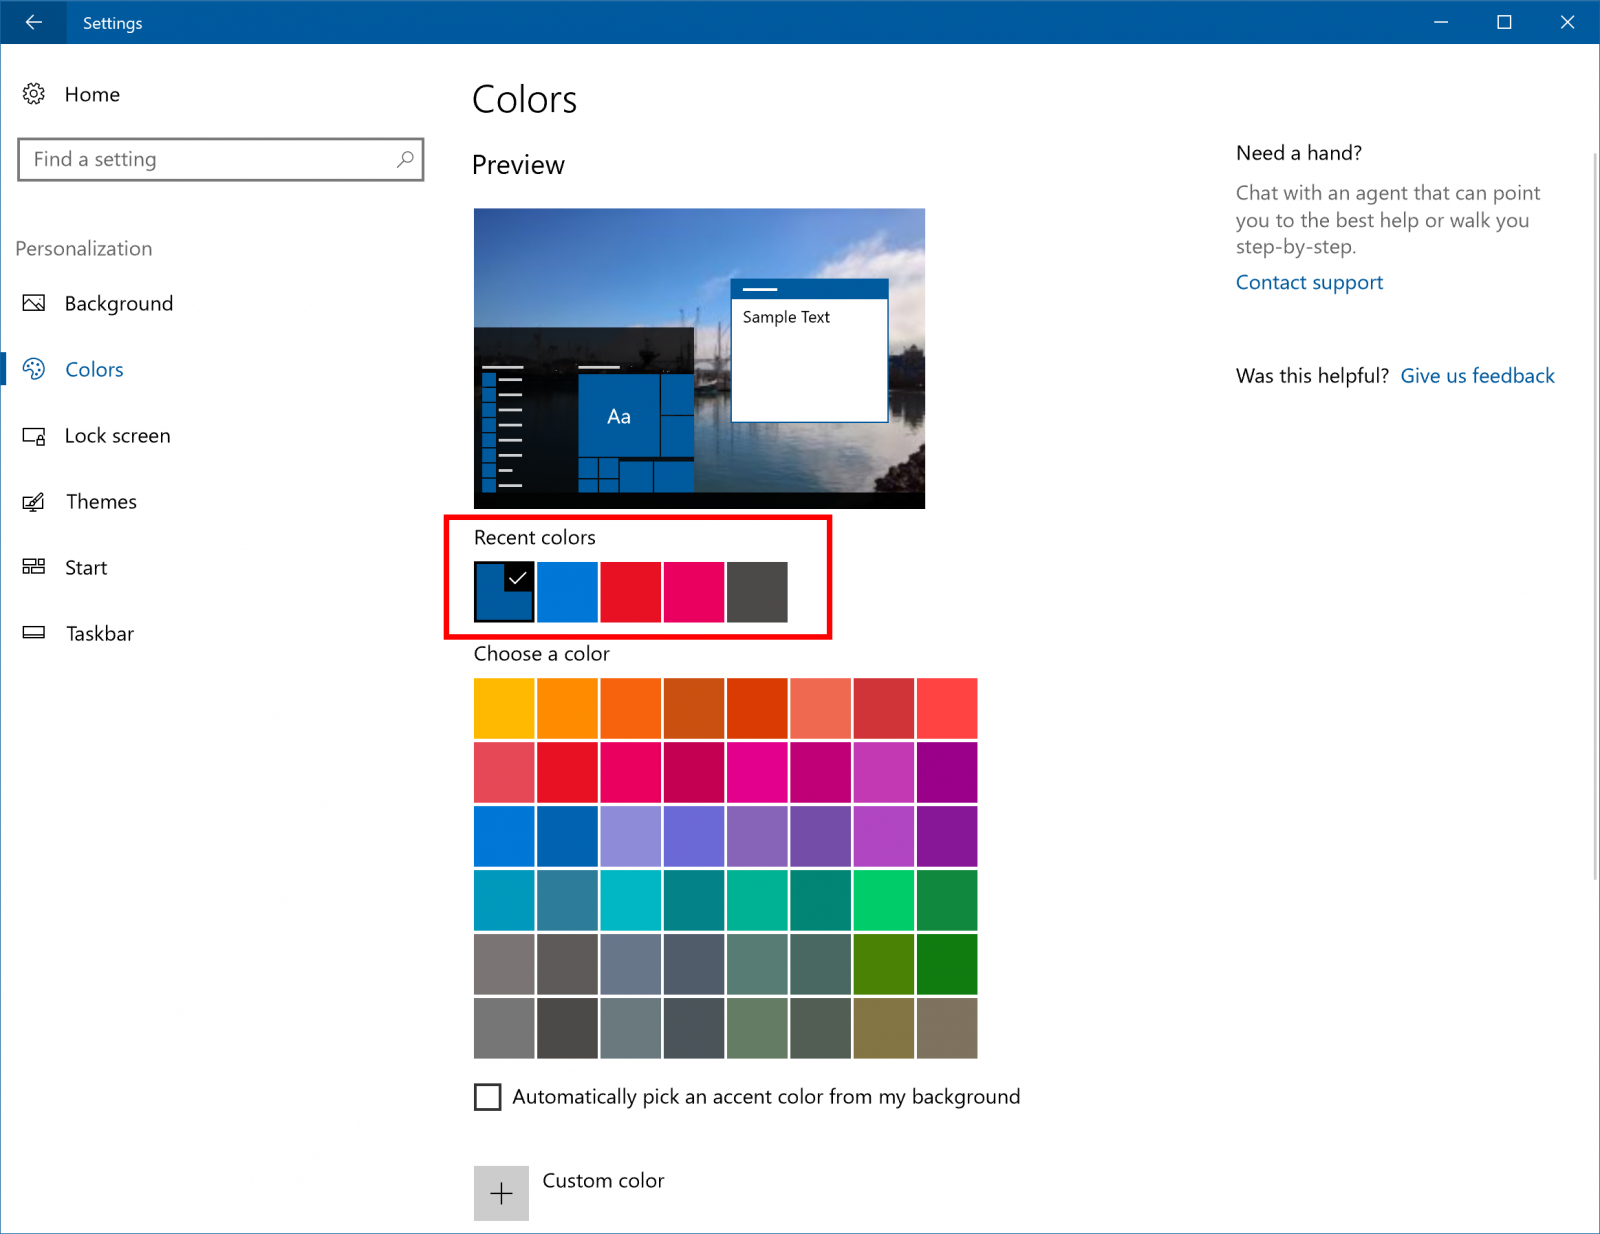 Windows Personalization now supports recent colors